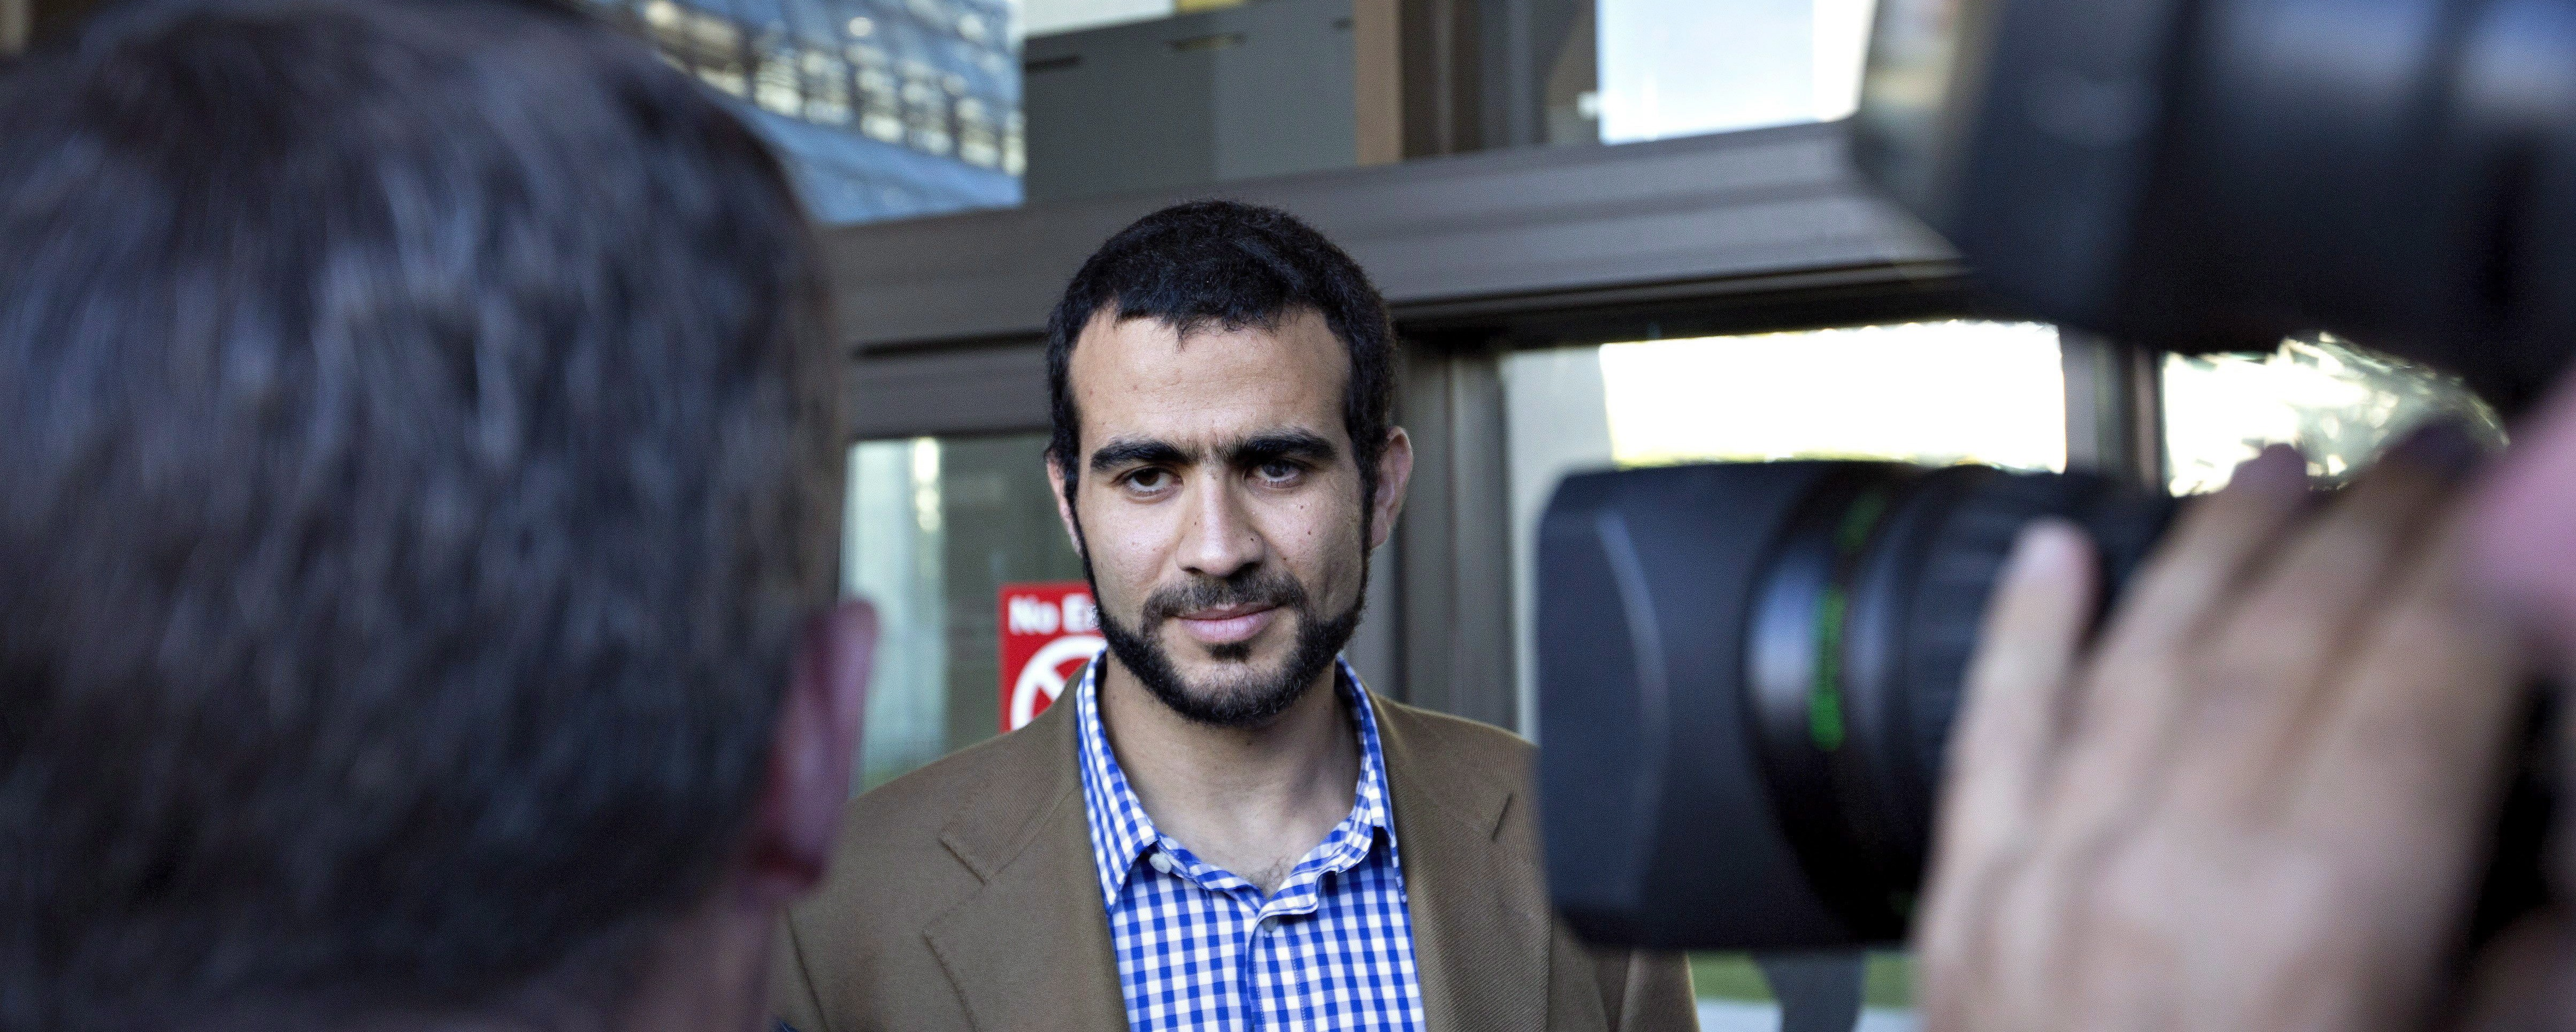 Ex-Guantanamo Inmate Omar Khadr Talks About Life on the Outside at Screening of Doc